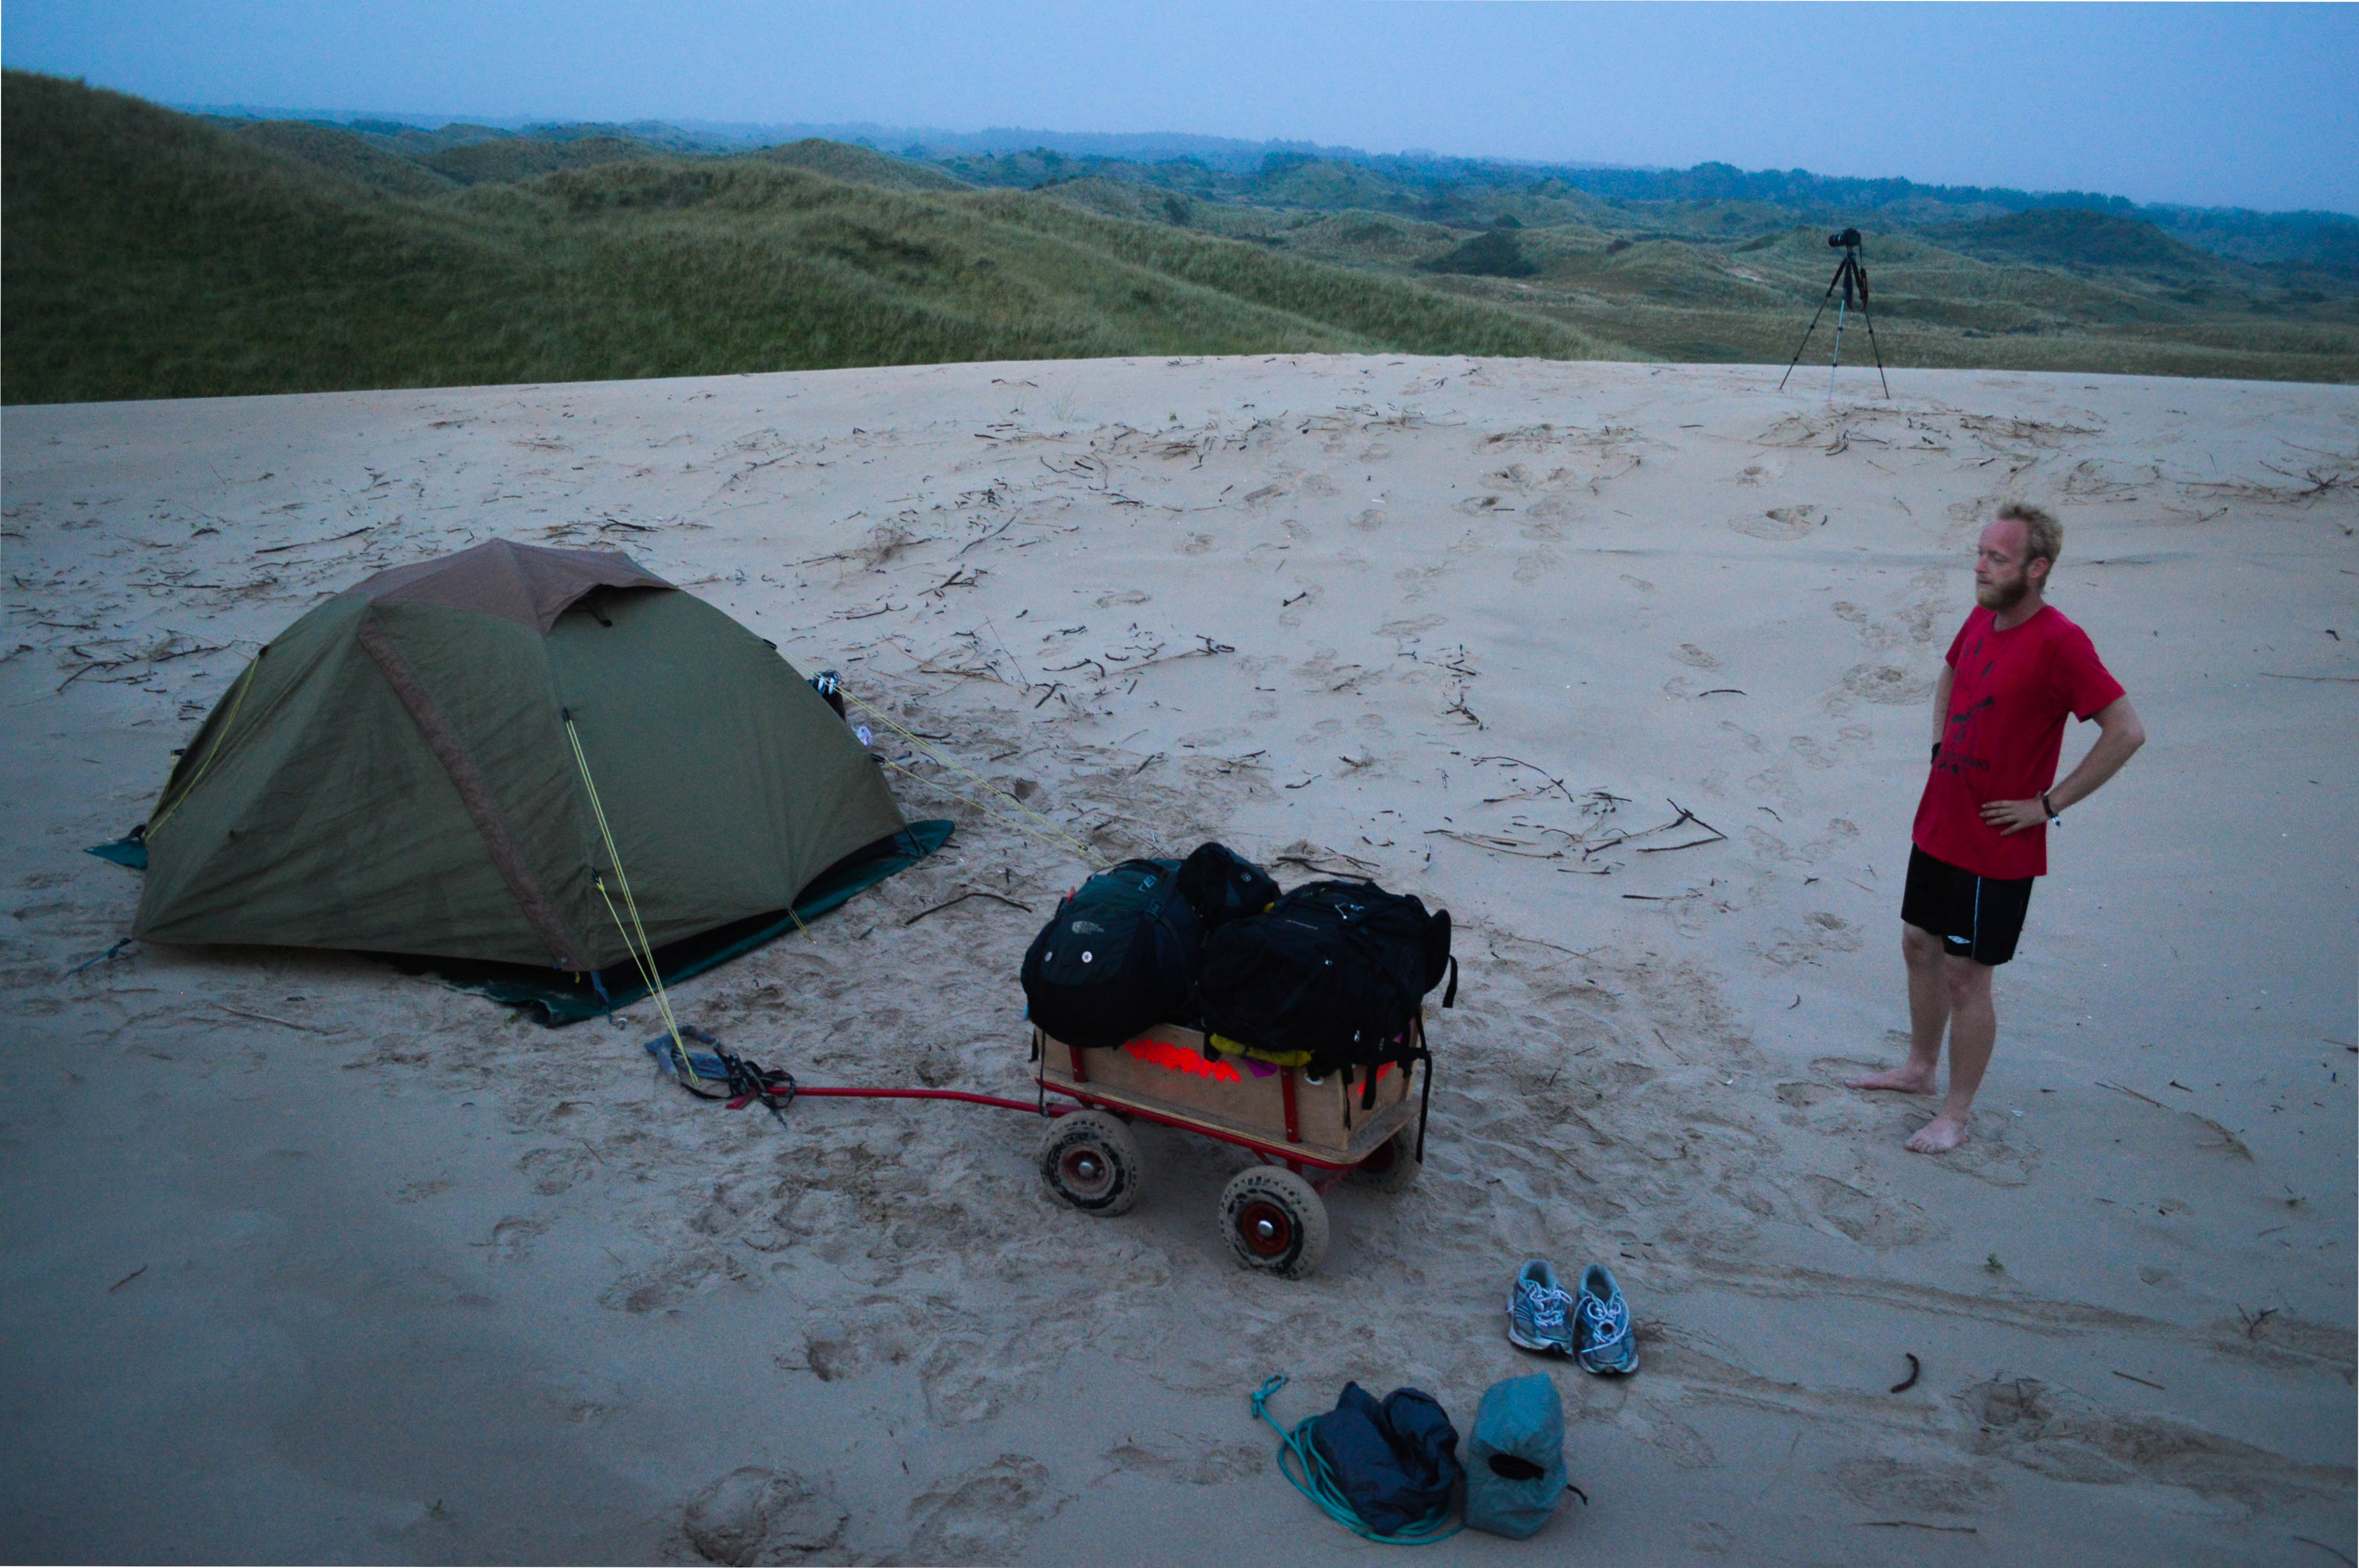 Wildcamping in dunes